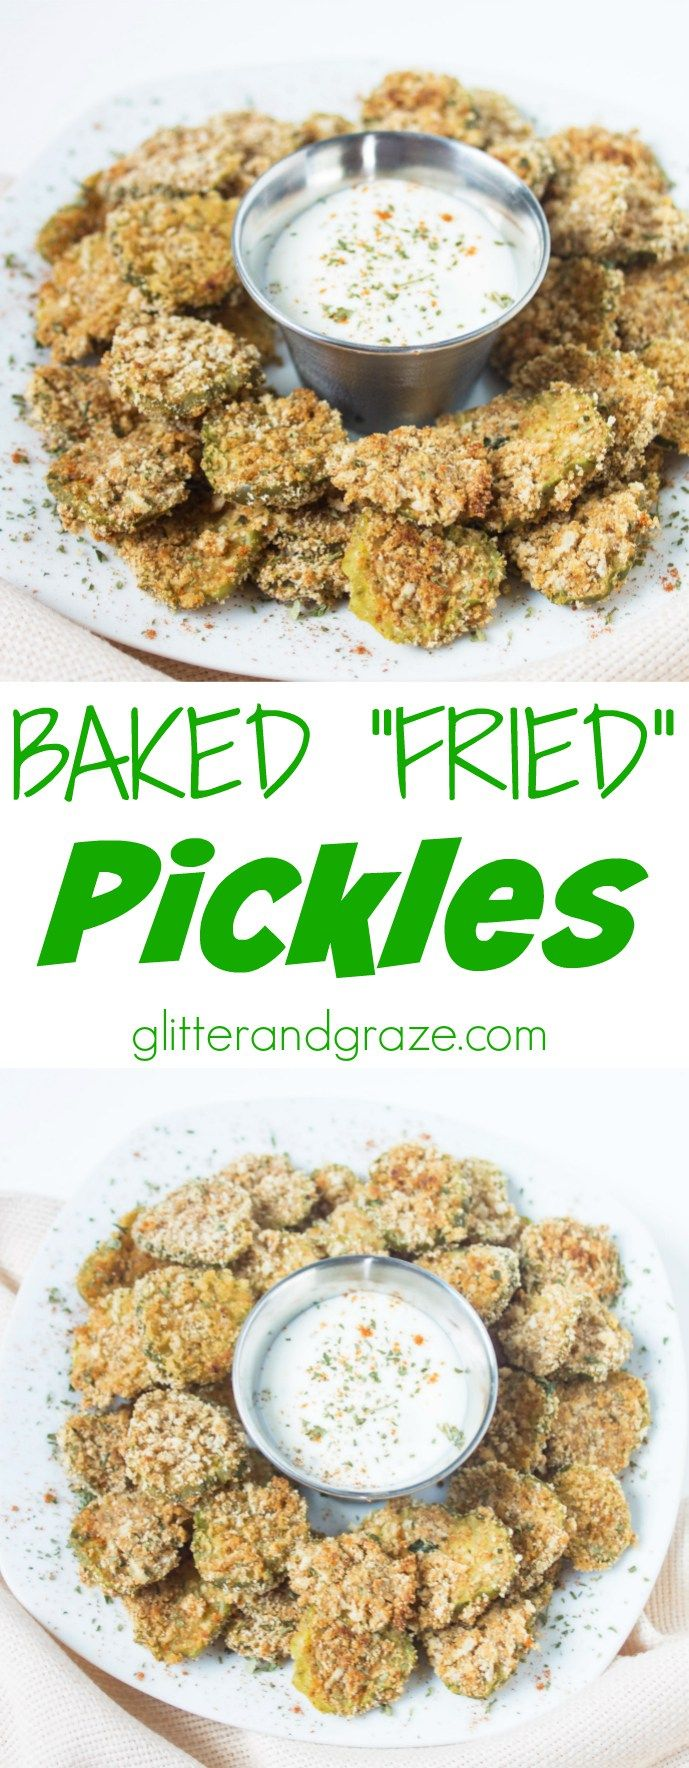 """Baked """"Fried"""" Pickles.  Great classic turned Healthy"""